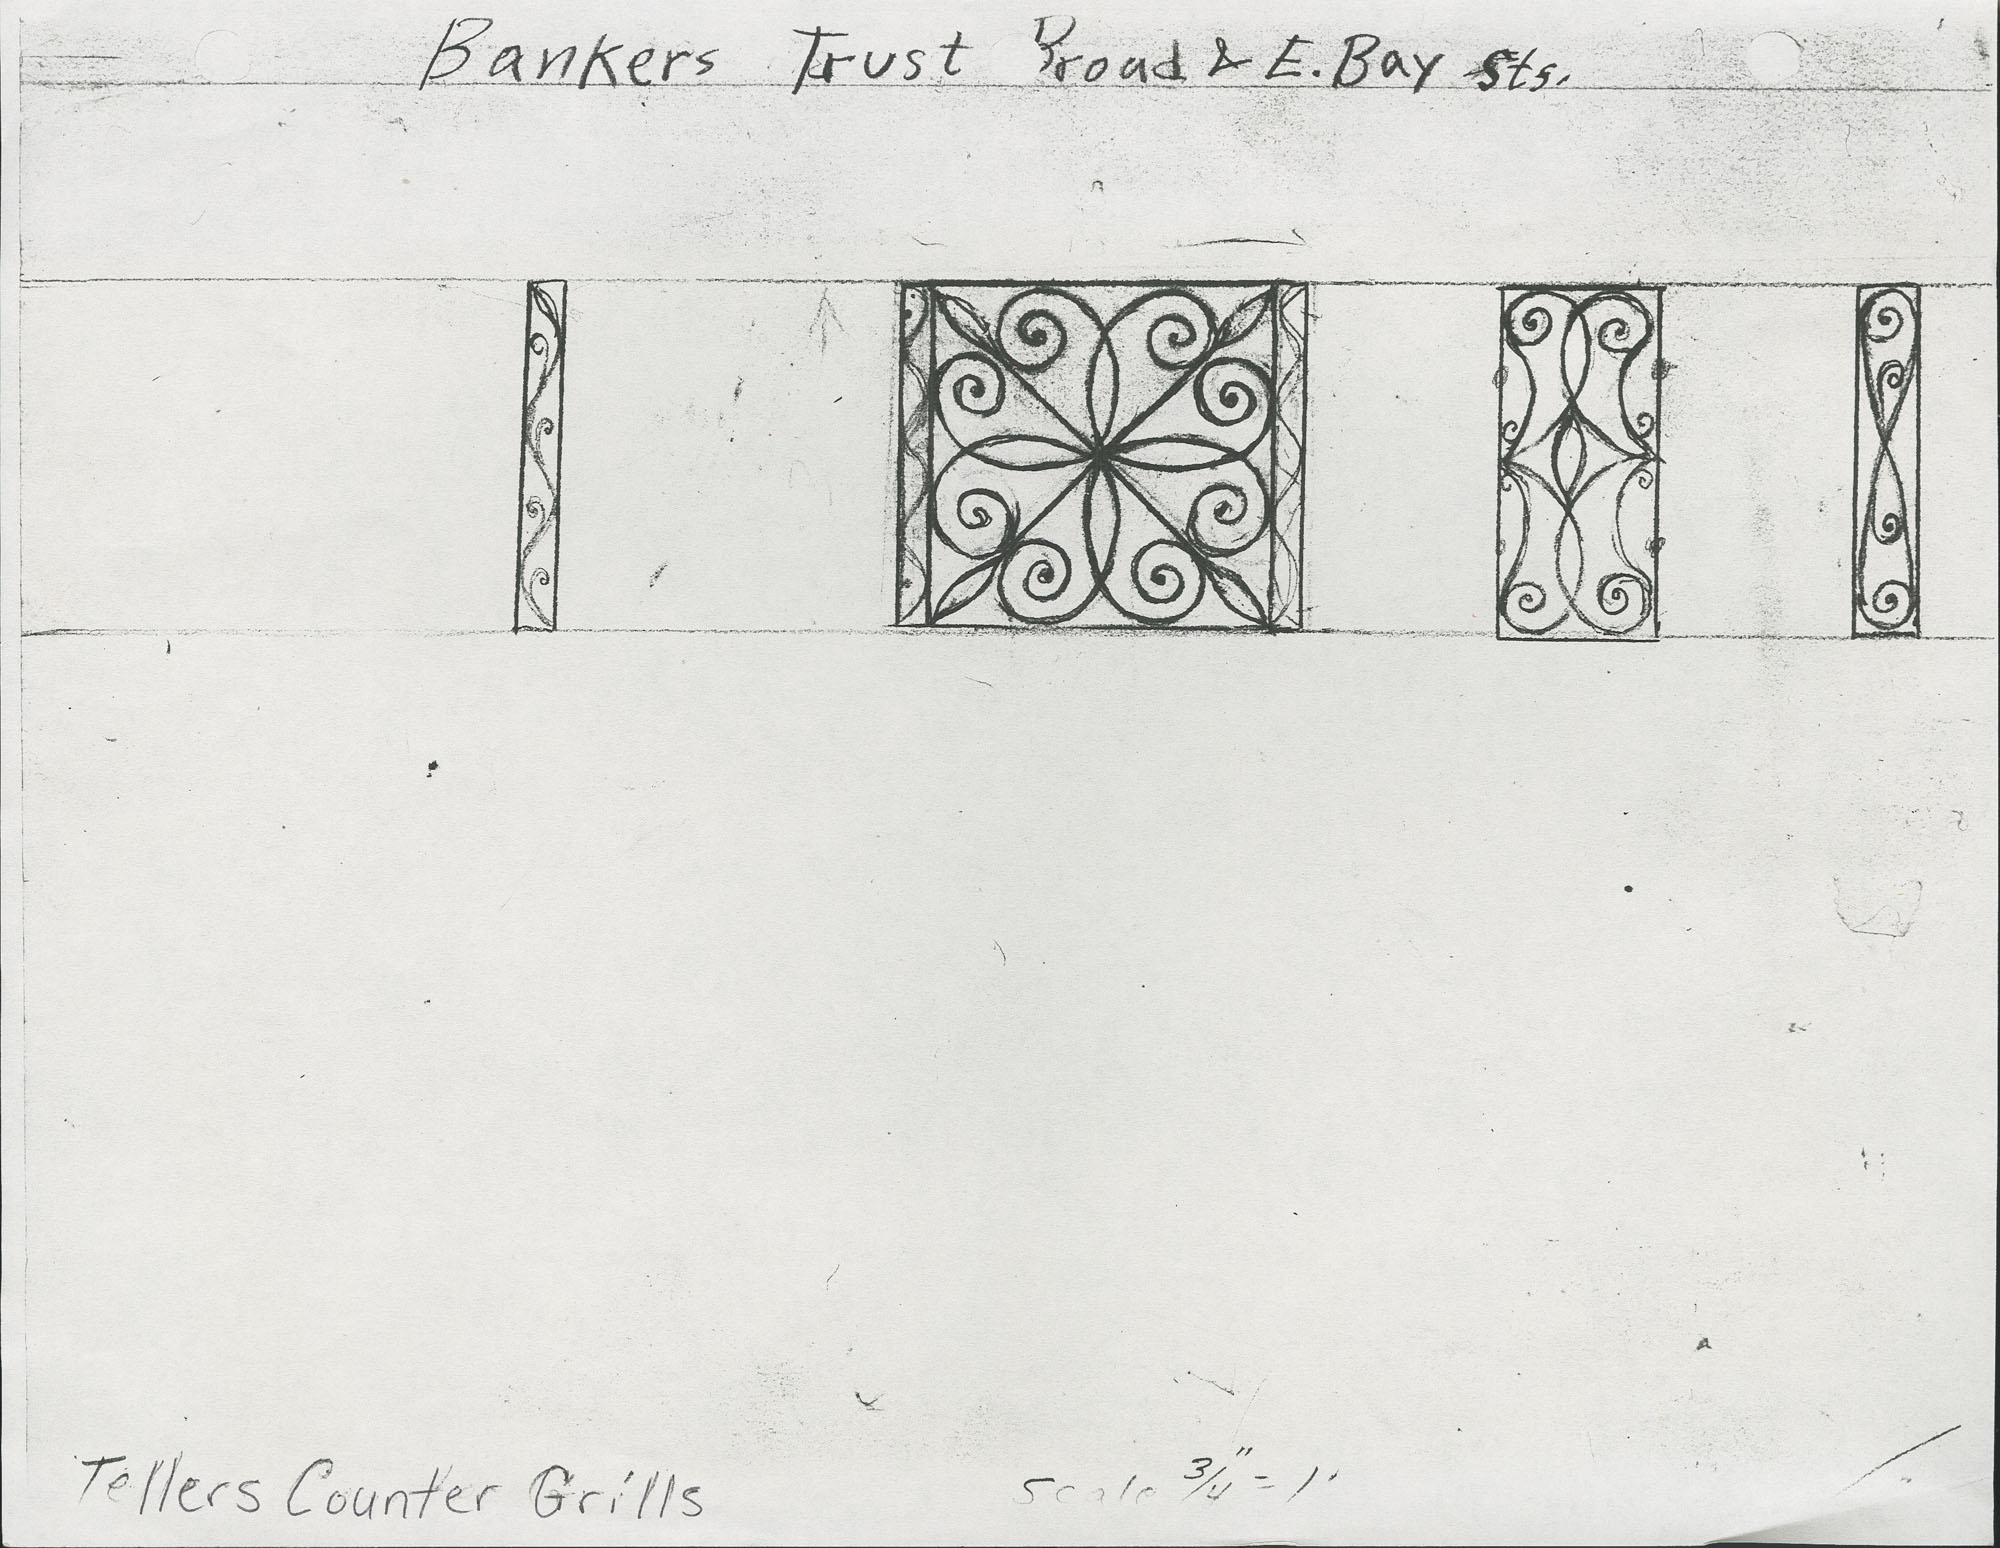 1 Broad Street (East Bay Street) teller counter grills drawing for Bankers Trust